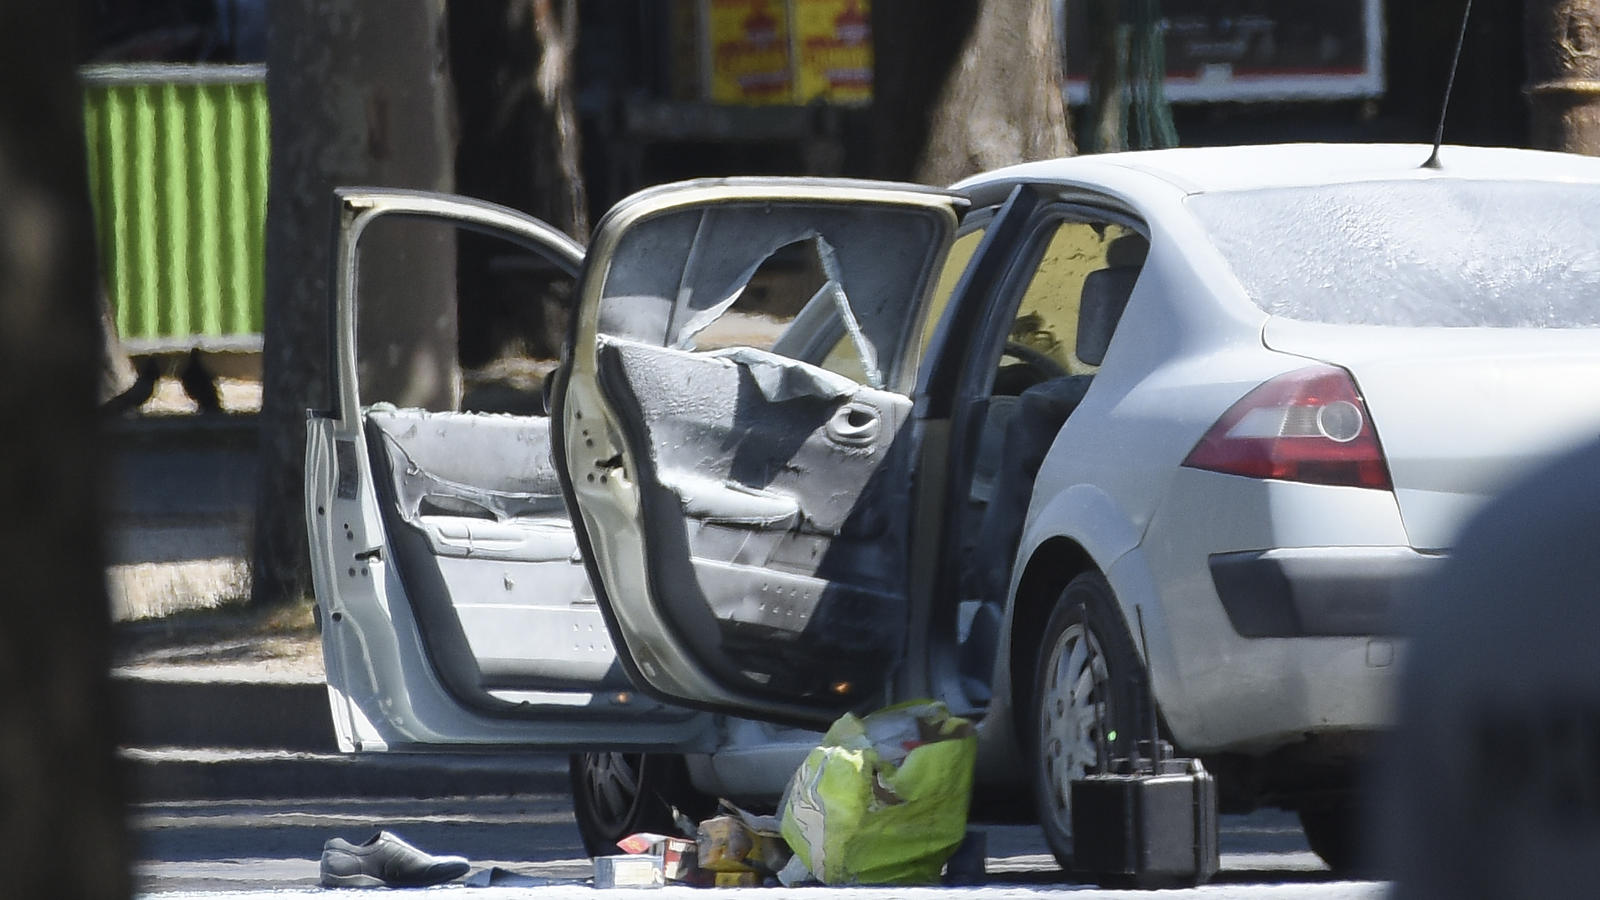 A major police operation set up after a vehicle was driven into a van of mobile gendarmes in Paris, France.